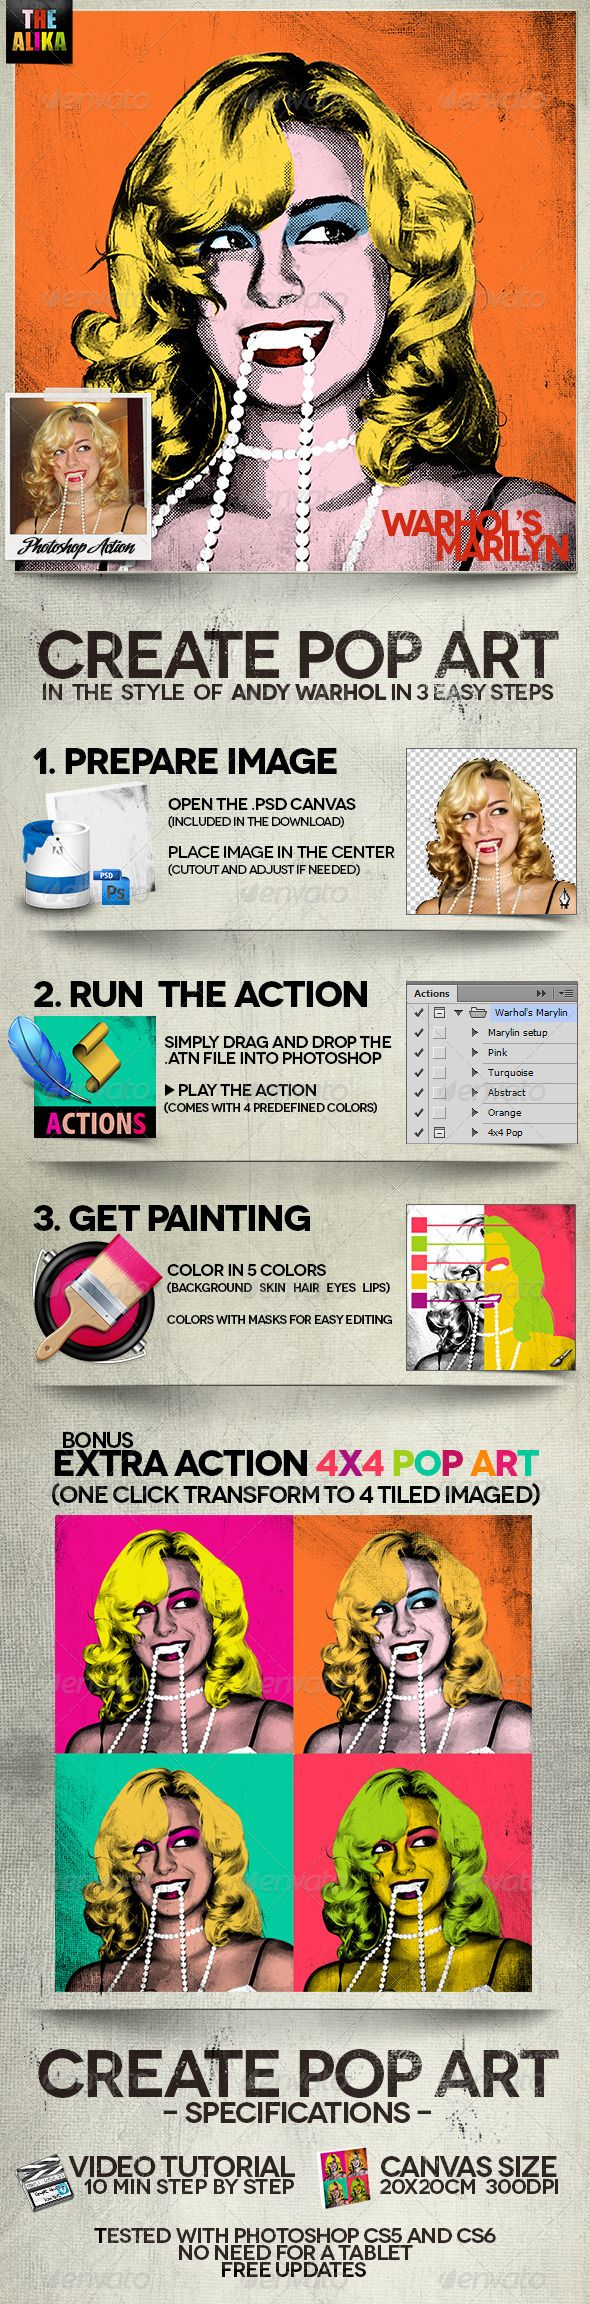 Create POP ART - Photoshop Action - Warhol Style